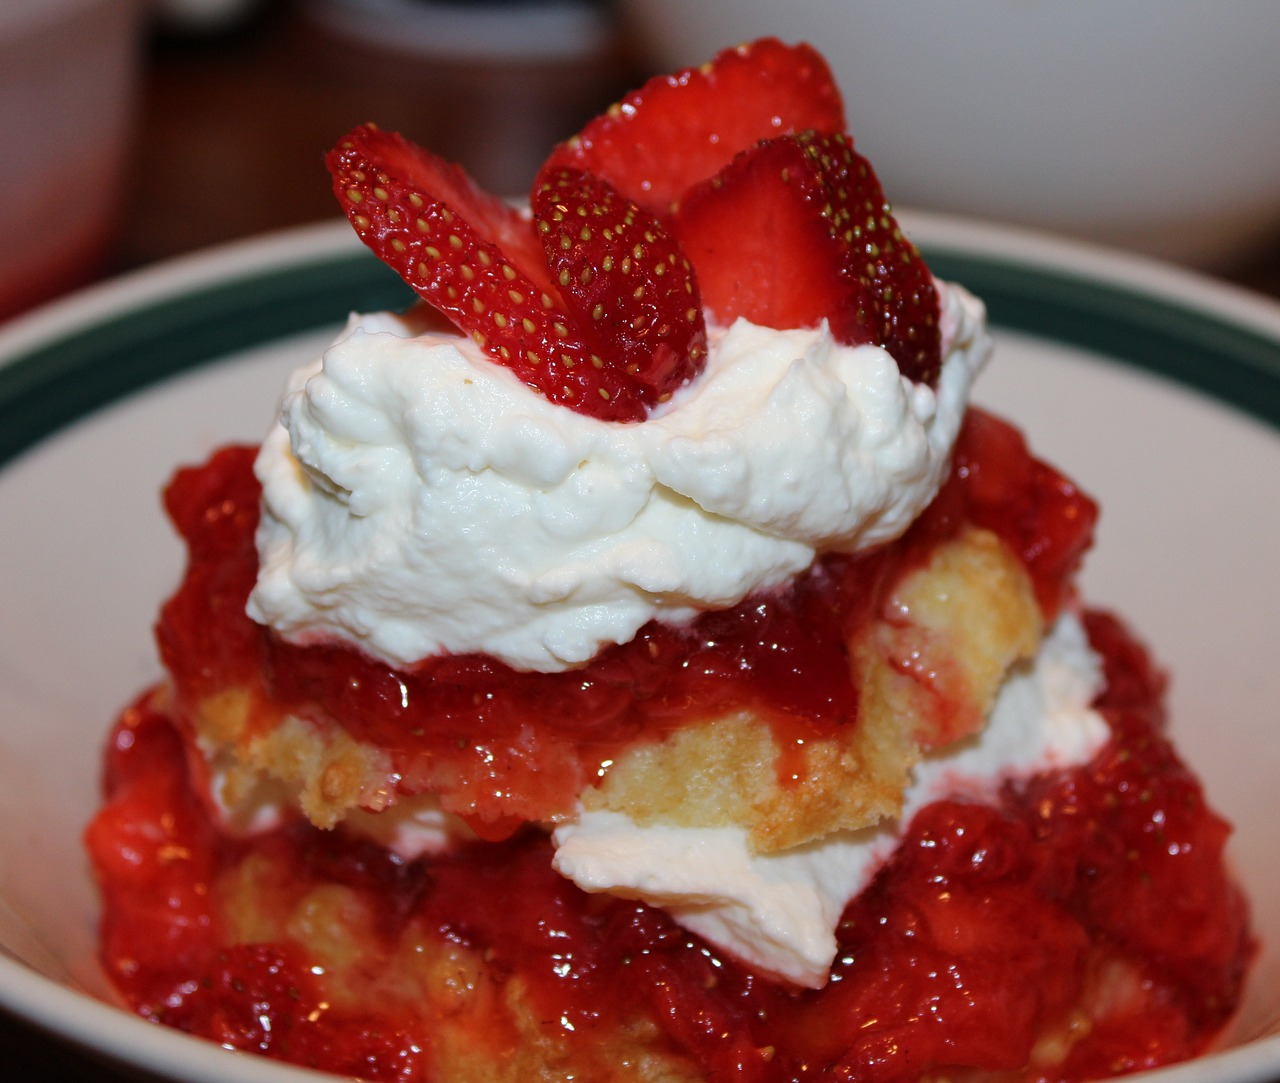 National Strawberry Shortcake Day celebrate all versions of this delectable dessert. My favourite is the sponge cake variety ... the way my mother used to make it.